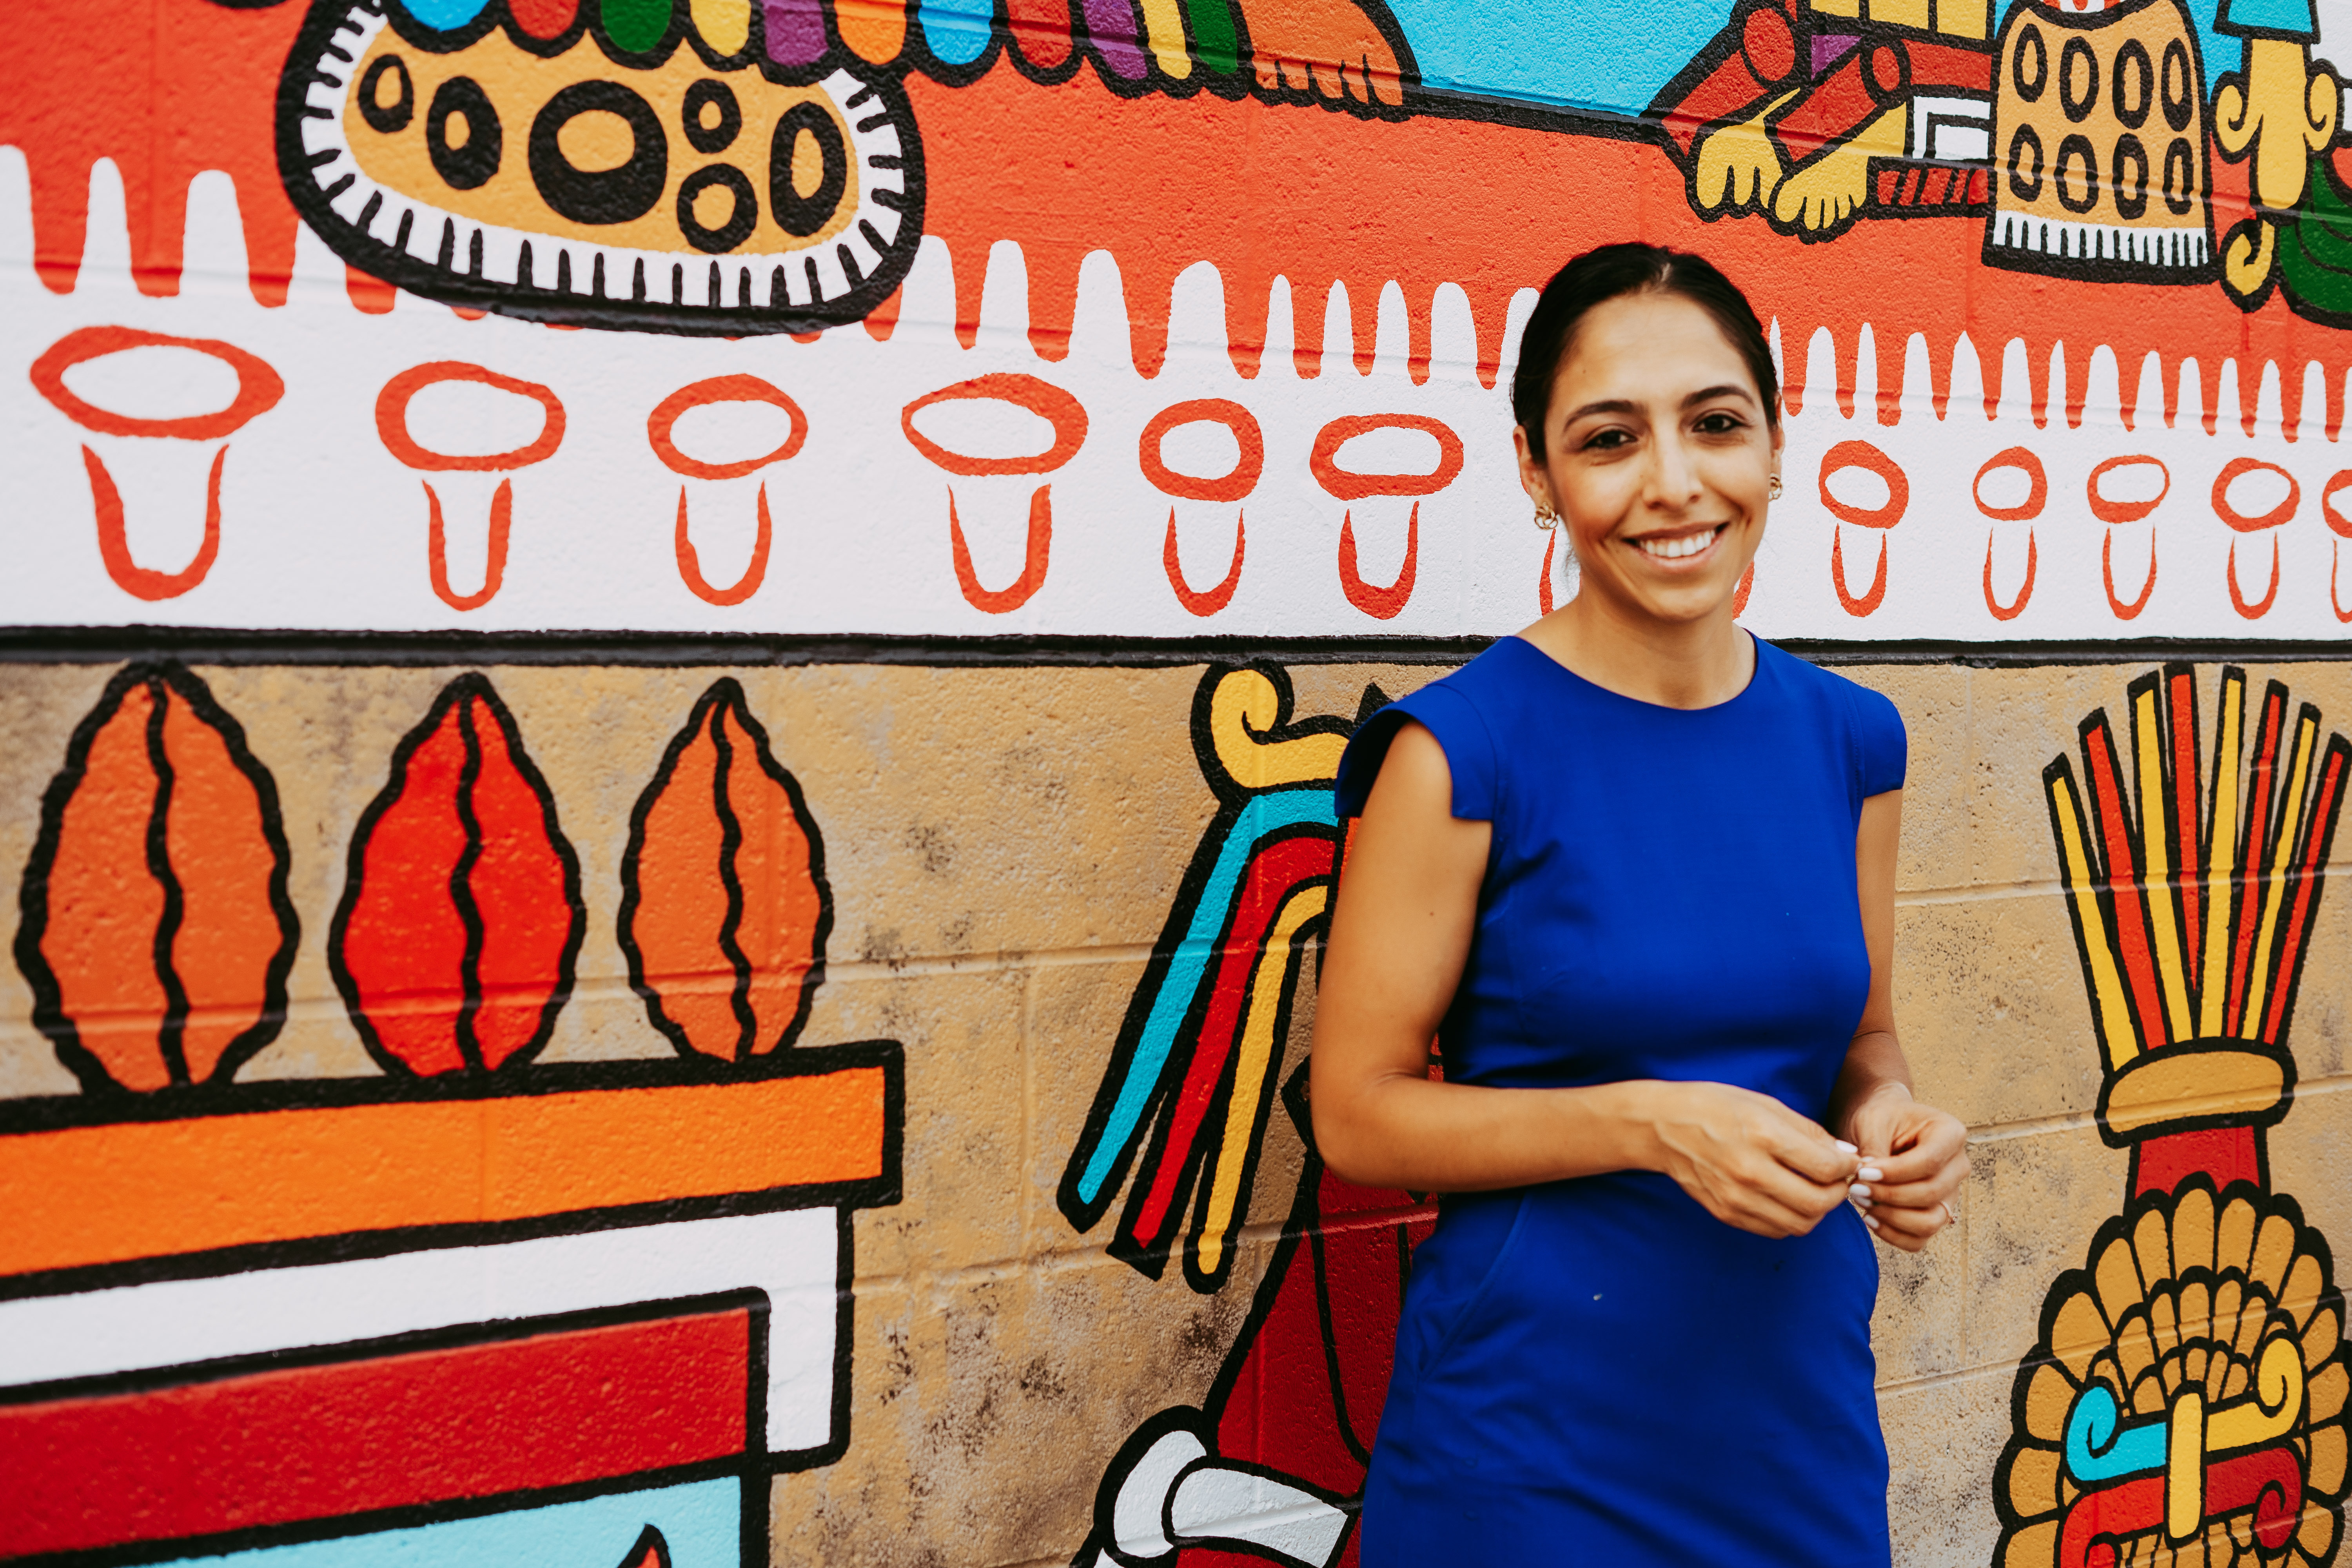 A woman wearing a blue dress poses in front of a brightly colored mural.